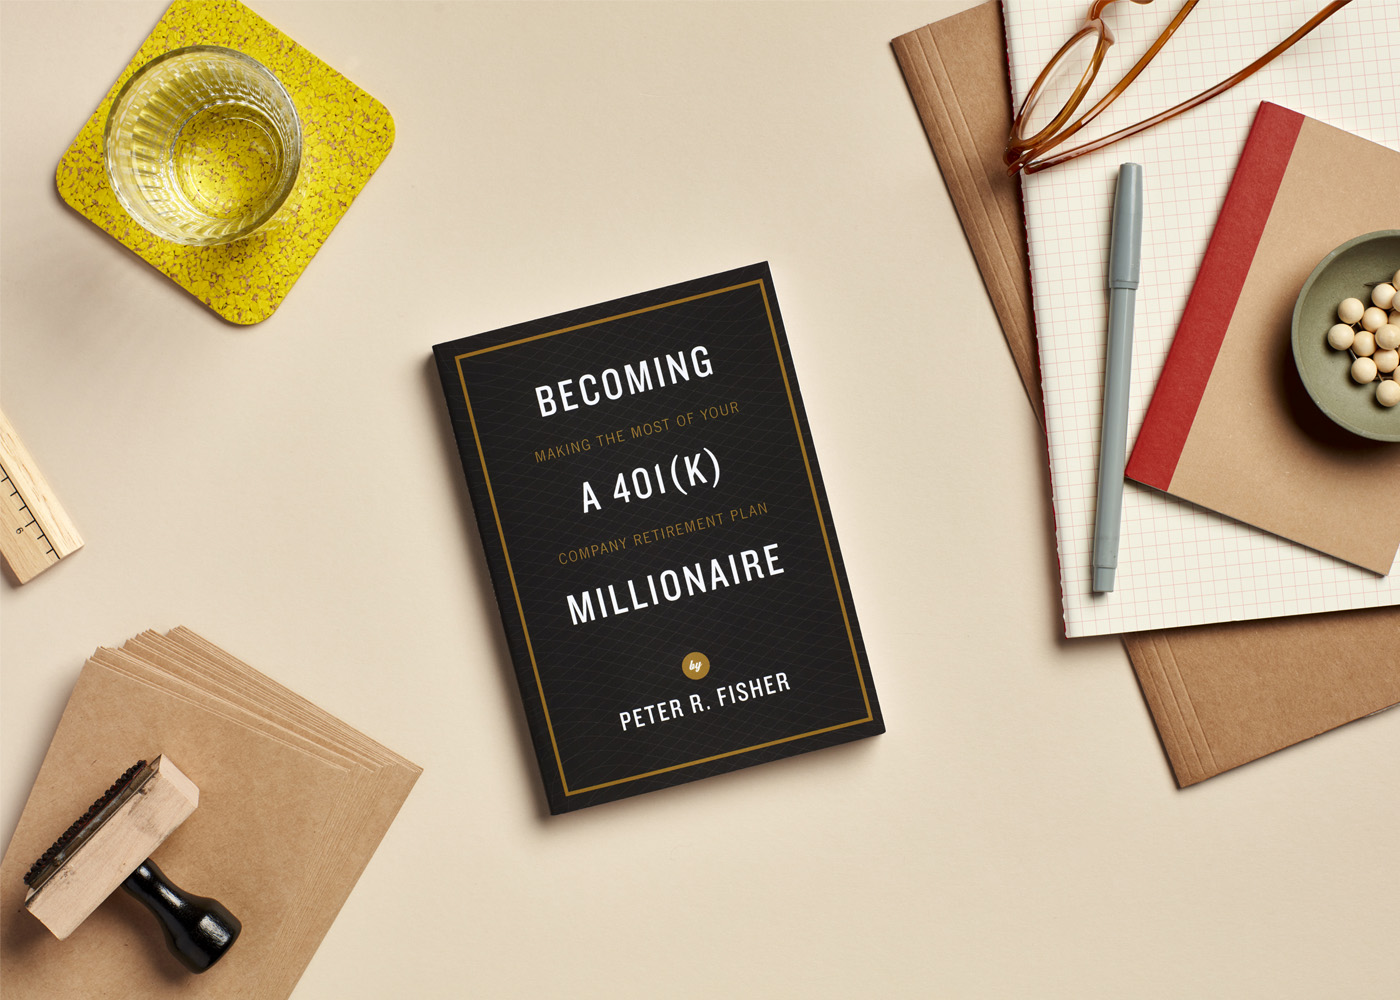 AVAILABLE AT ALL MAJOR BOOKSTORES - Becoming a 401(k) Millionaire answers the big questions when it comes to retirement planning, no matter what stage of life you are in.